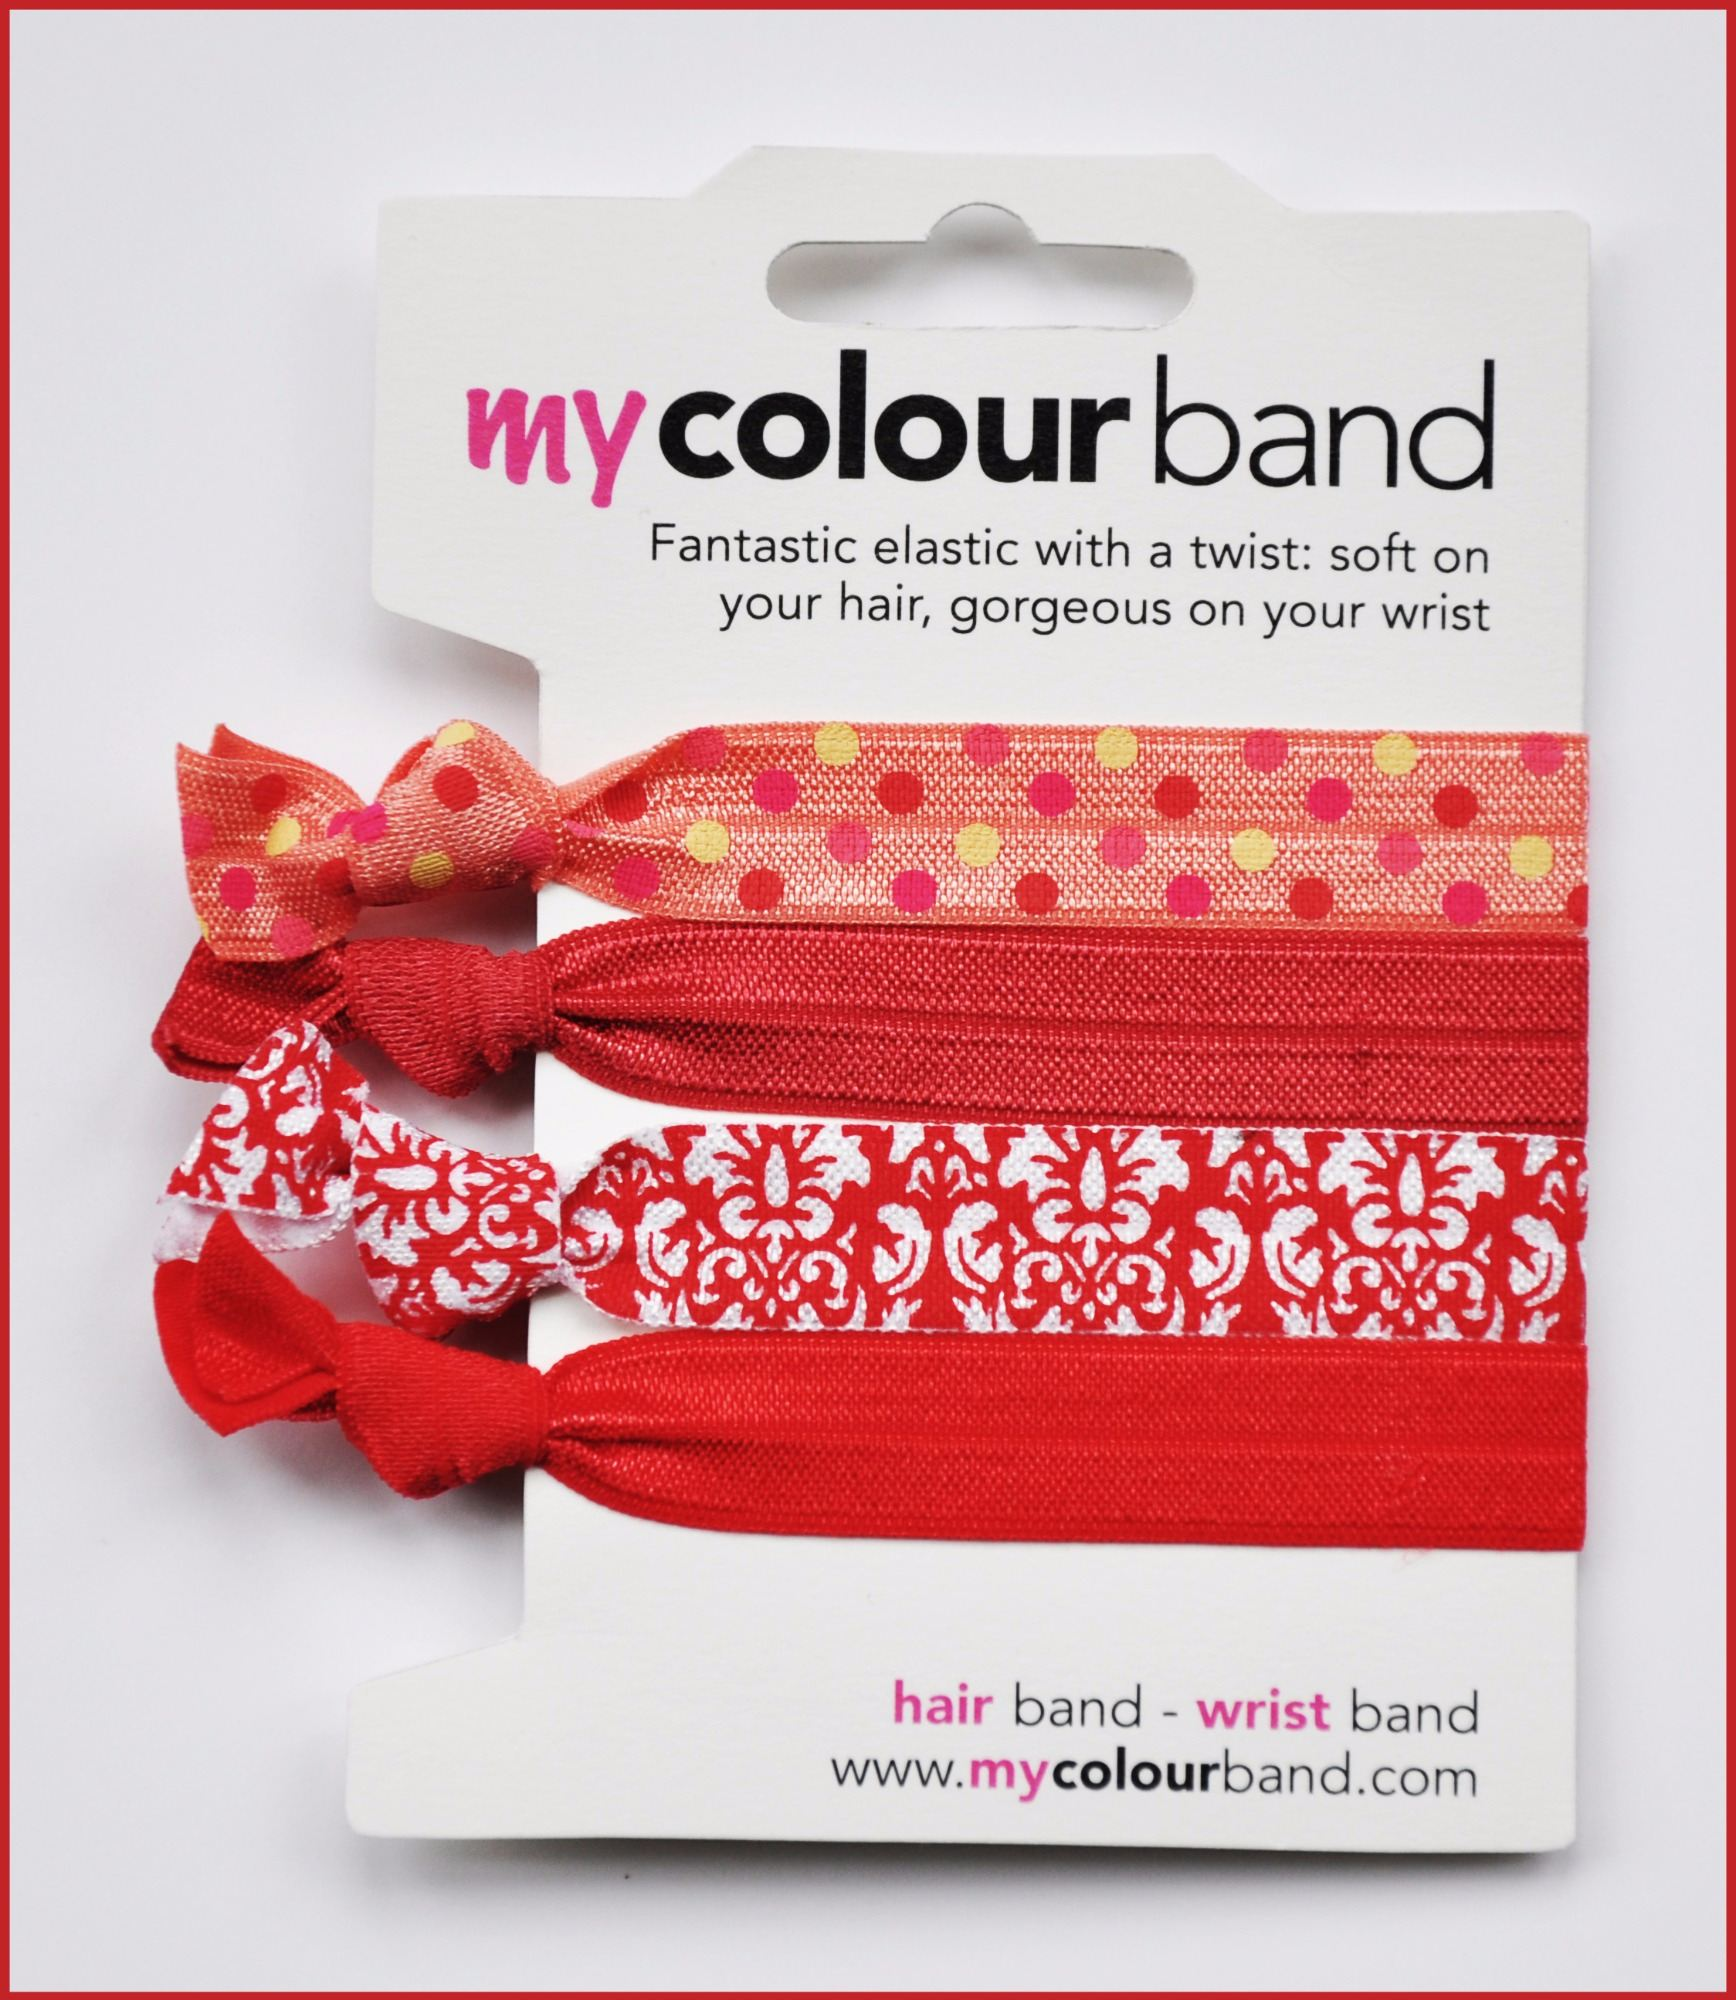 with of band twist weddingbee e wedding featured twisted best engagement photo bands rings suggestionsexperiences